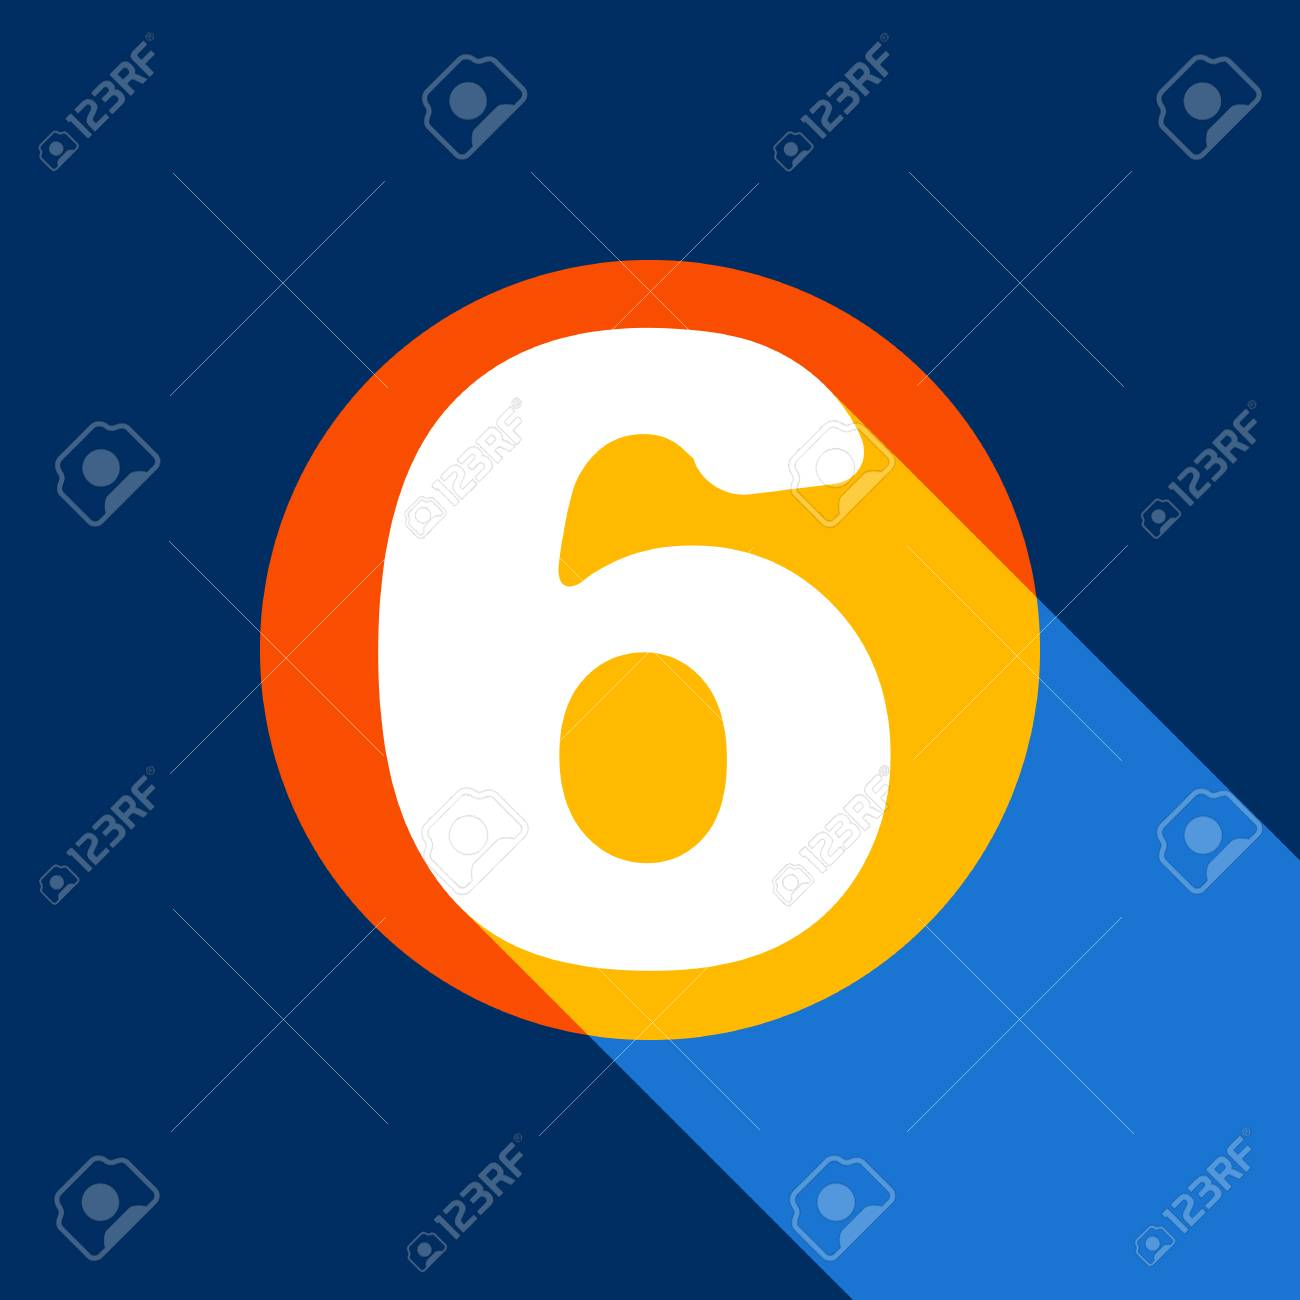 Number 6 sign design template element. Vector. White icon on tangelo circle with infinite shadow of light at cool black background. Selective yellow and bright navy blue are produced. - 90133843